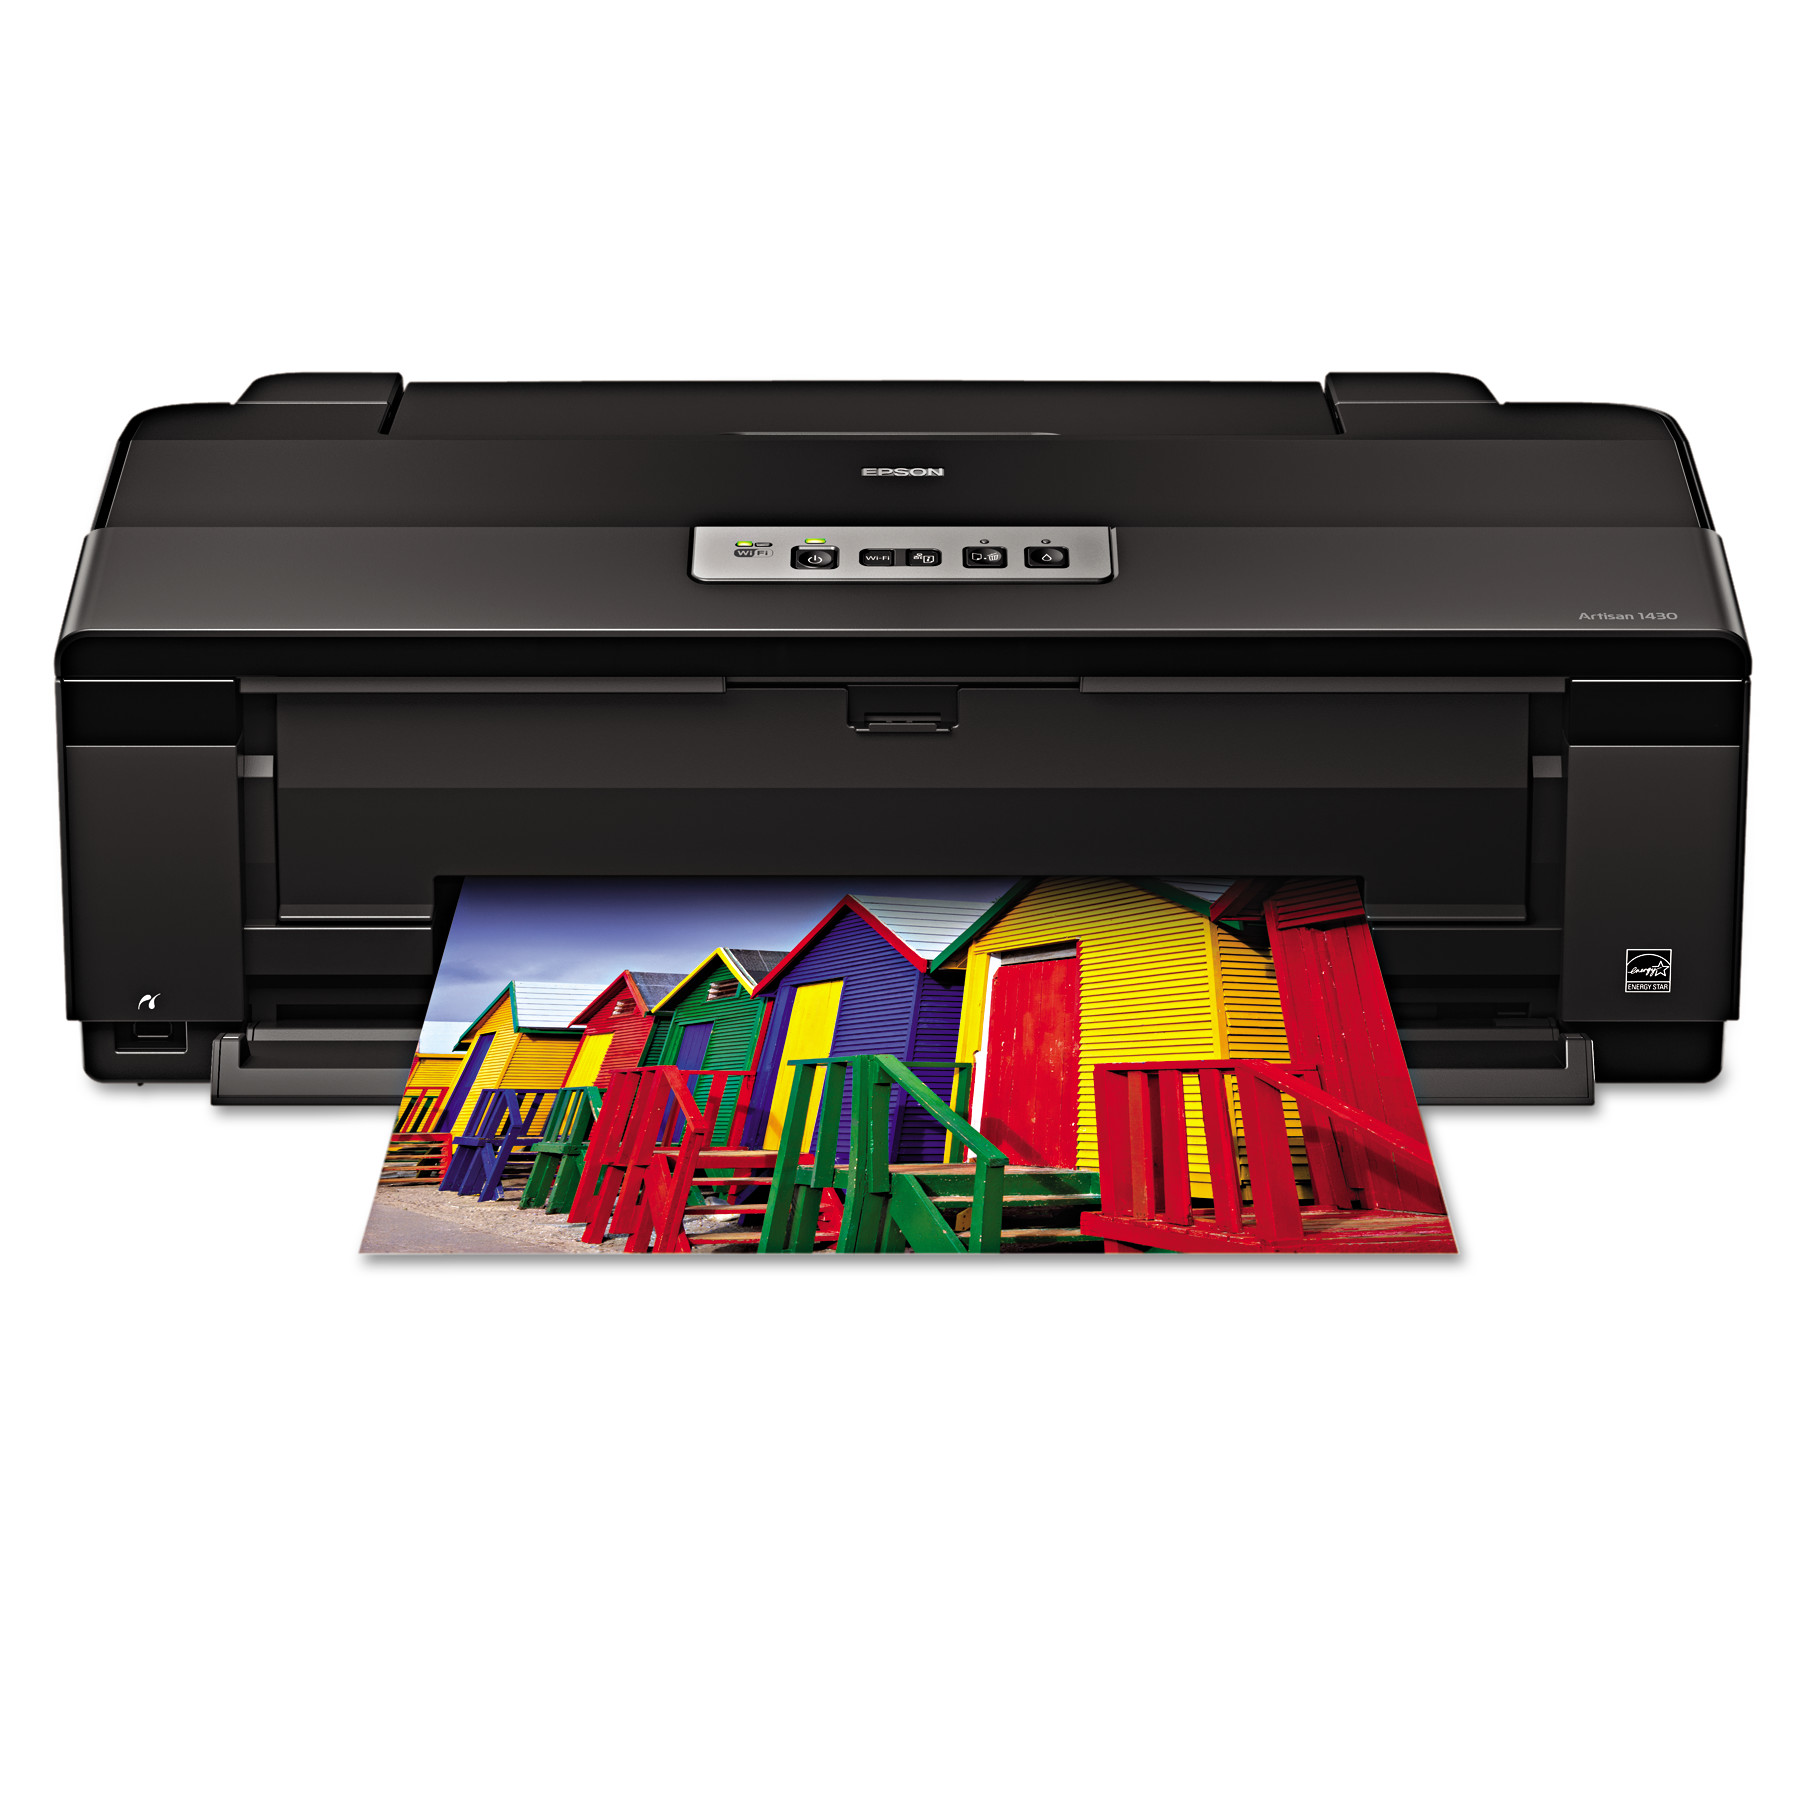 Epson Artisan 1430 Wireless Inkjet Printer by Epson